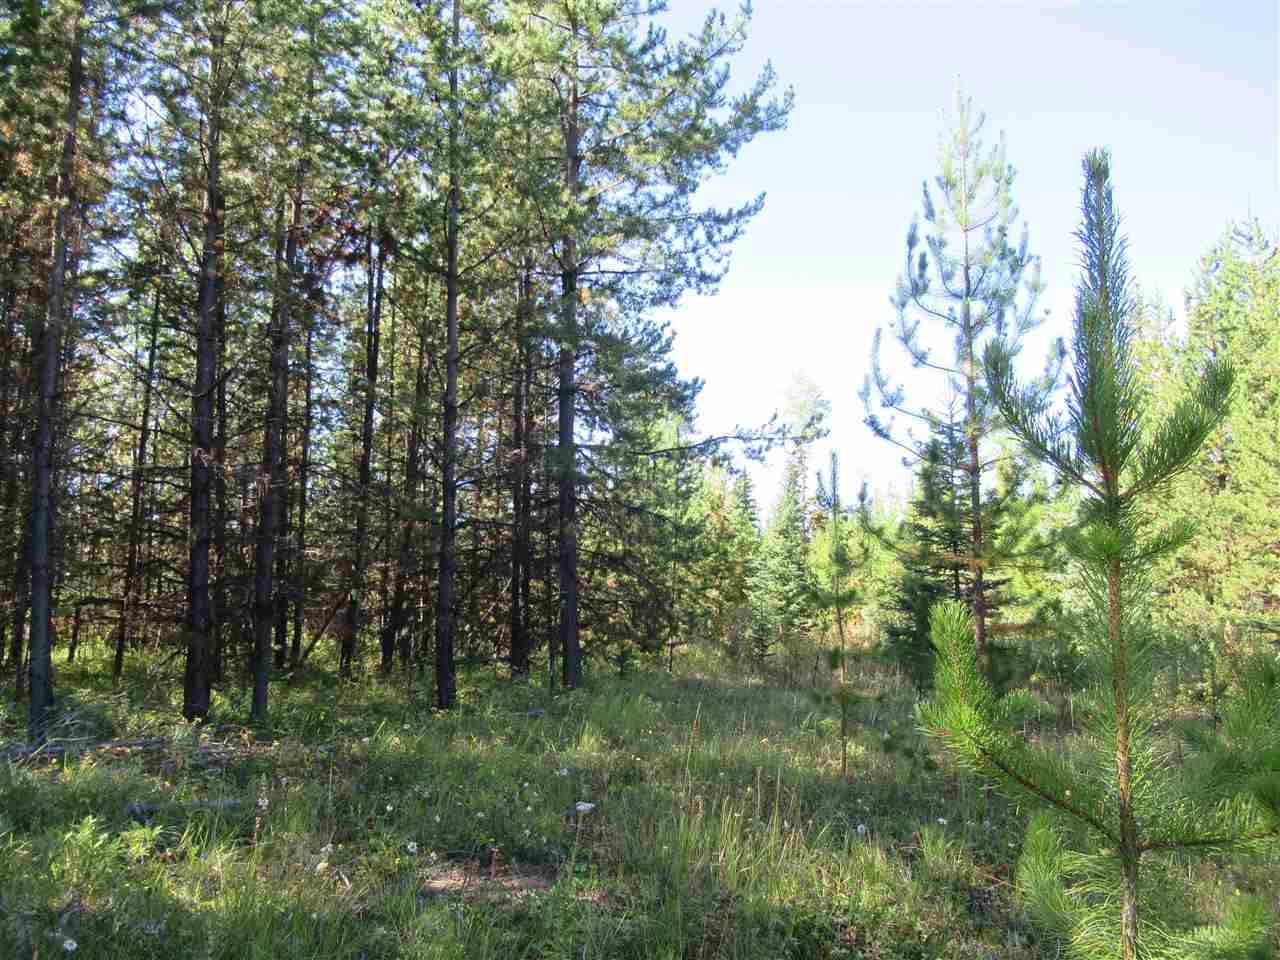 Photo 20: Photos: DL 6426 TONKA Road: 150 Mile House Land for sale (Williams Lake (Zone 27))  : MLS®# R2497364